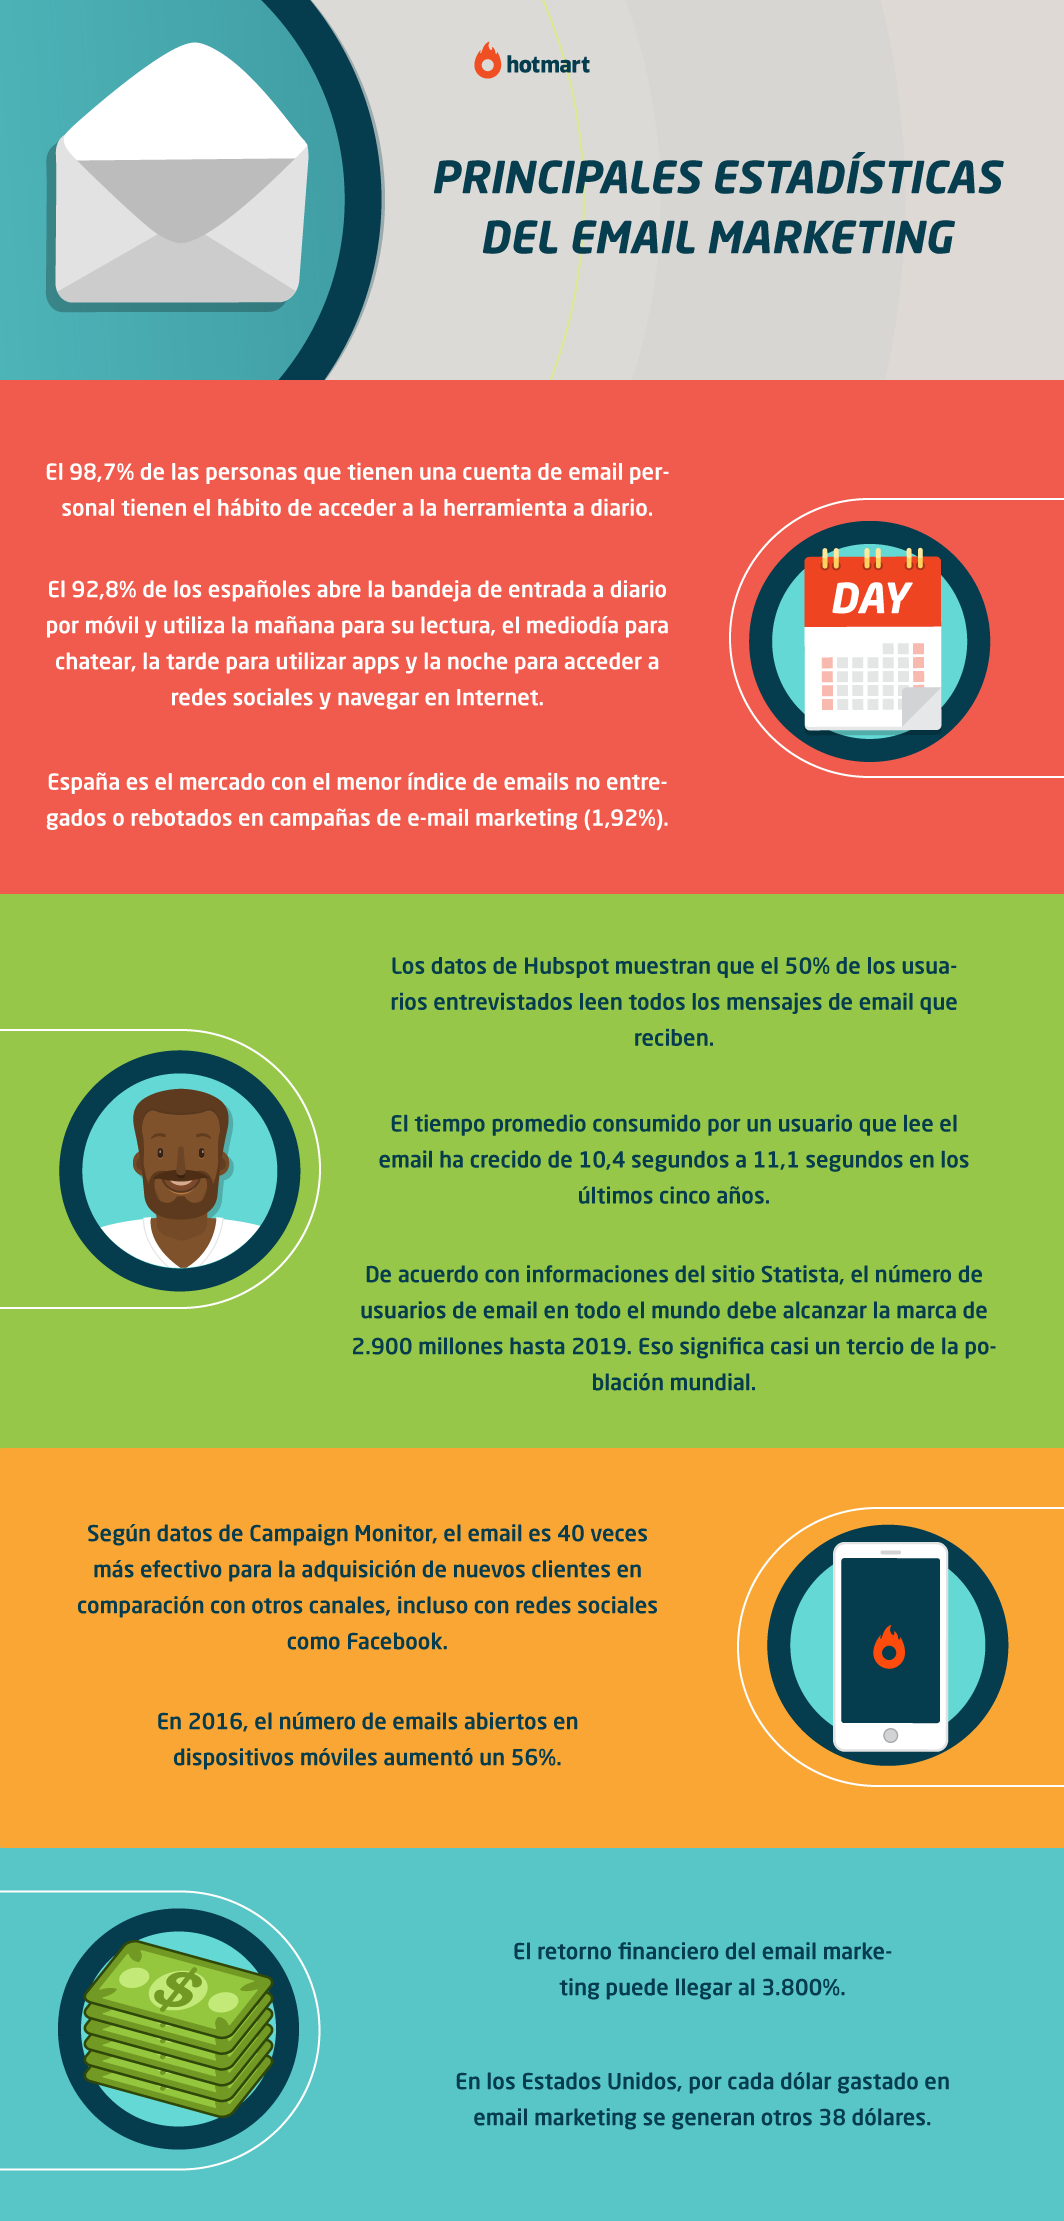 Infográfico de las principales estadísticas del email marketing